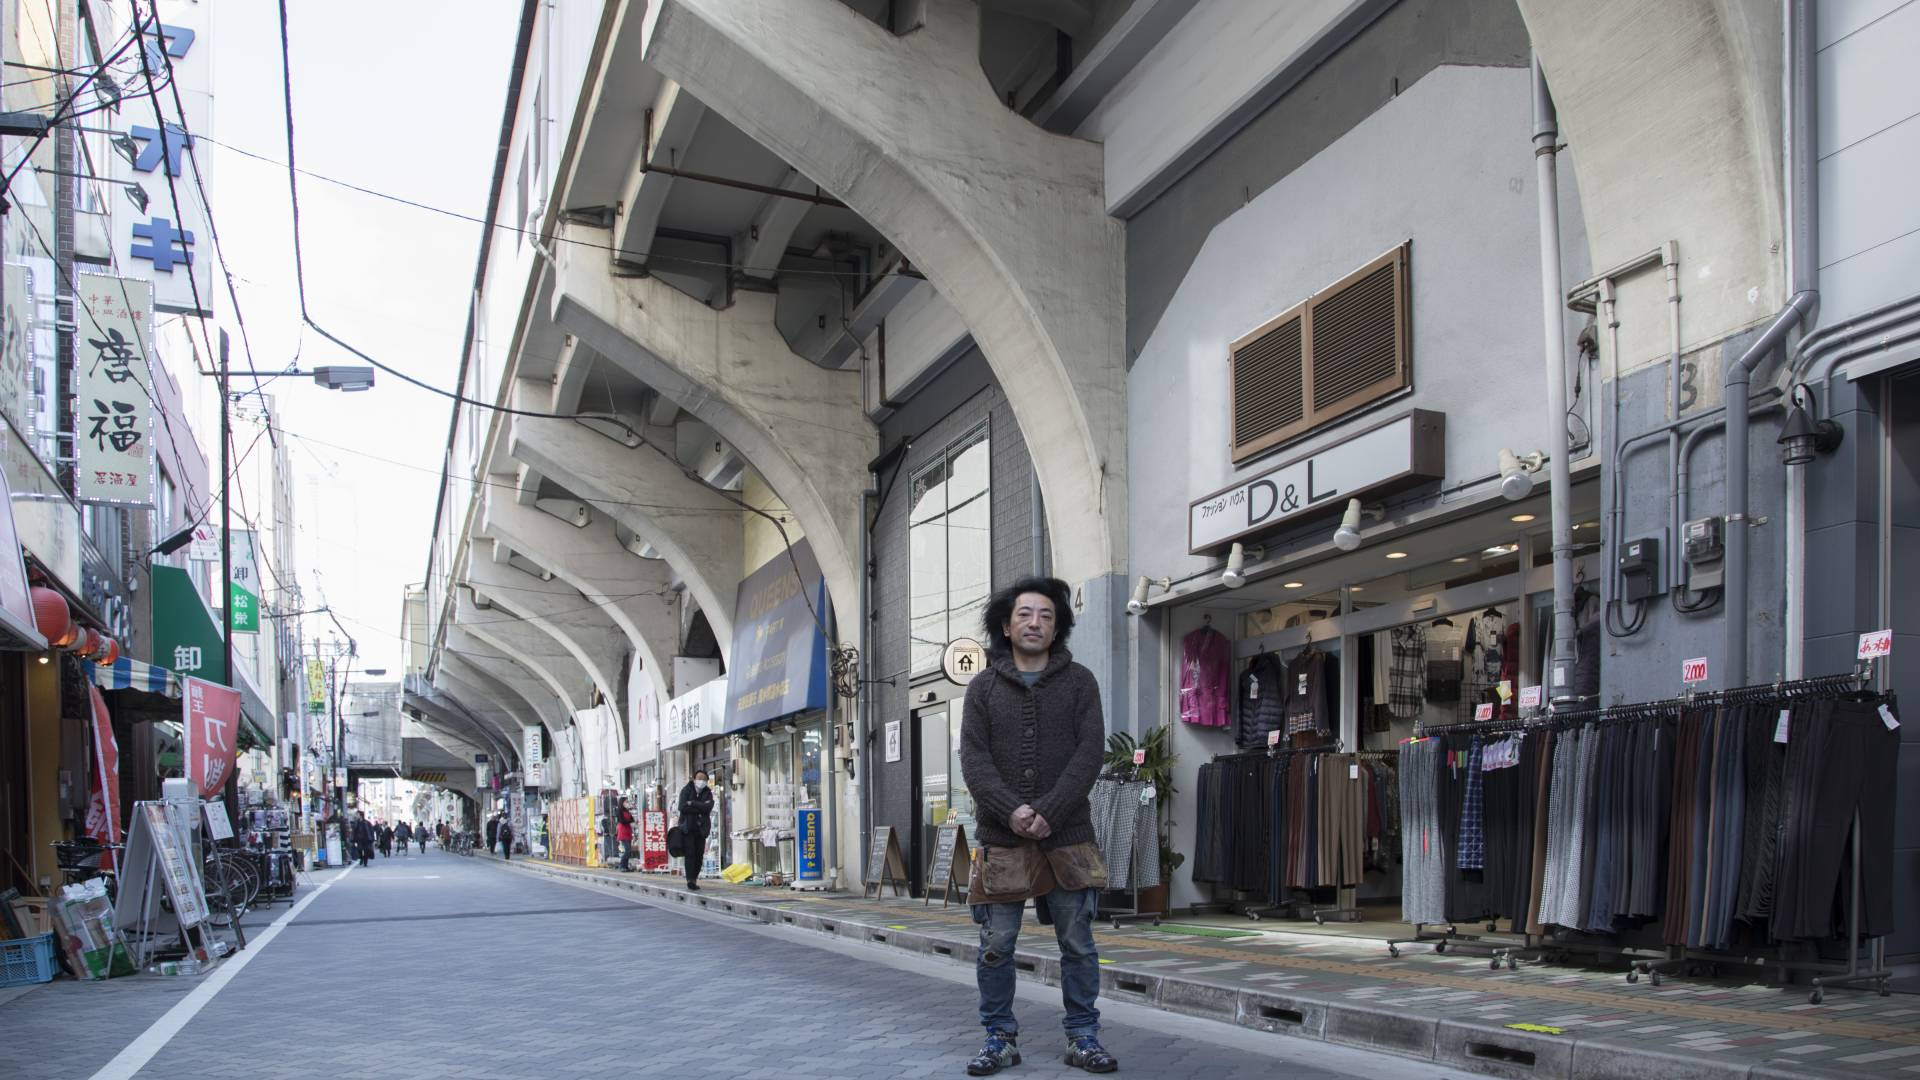 A local artisan reveals some of the secrets of Asakusabashi with